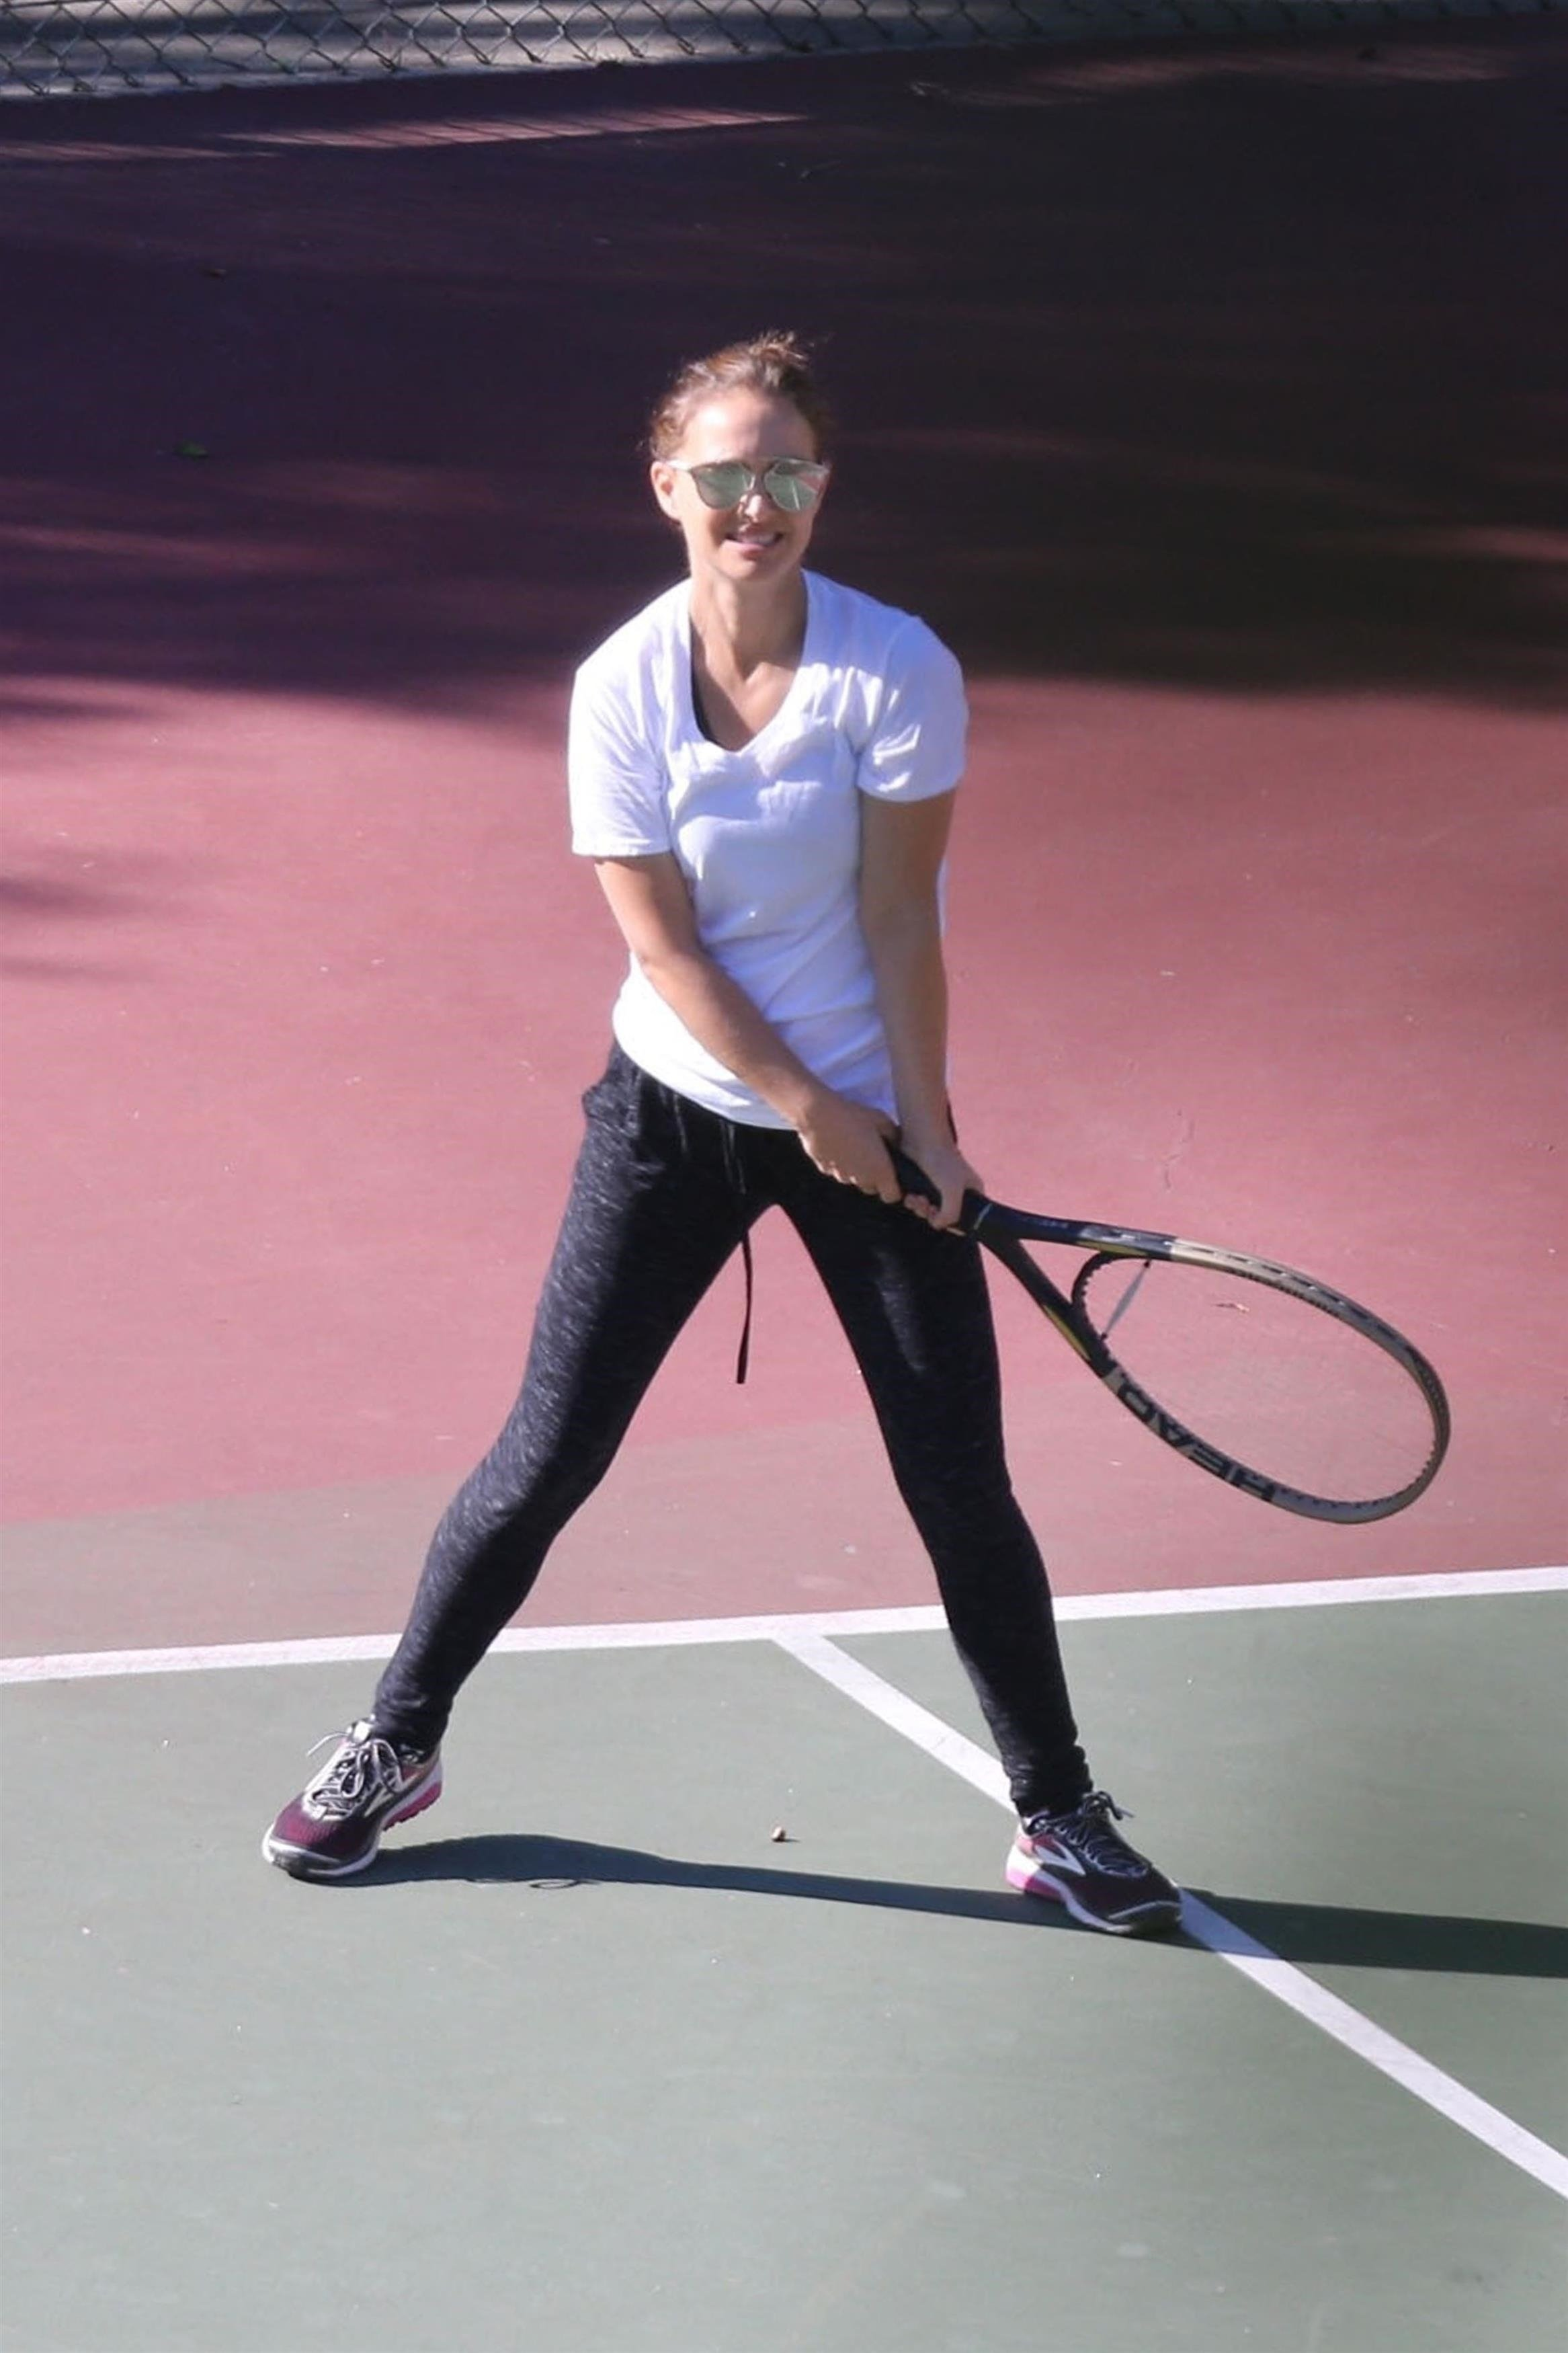 Los Angeles, CA  - *EXCLUSIVE*  - Actress Natalie Portman and a friend enjoy an early morning tennis lesson in Los Angeles. Natalie was all smiles as she did her best to hit the balls back across the court.  Pictured: Natalie Portman  BACKGRID USA 27 SEPTEMBER 2017   USA: +1 310 798 9111 / usasales@backgrid.com  UK: +44 208 344 2007 / uksales@backgrid.com  *UK Clients - Pictures Containing Children Please Pixelate Face Prior To Publication*, Image: 350751314, License: Rights-managed, Restrictions: , Model Release: no, Credit line: Profimedia, AKM-GSI